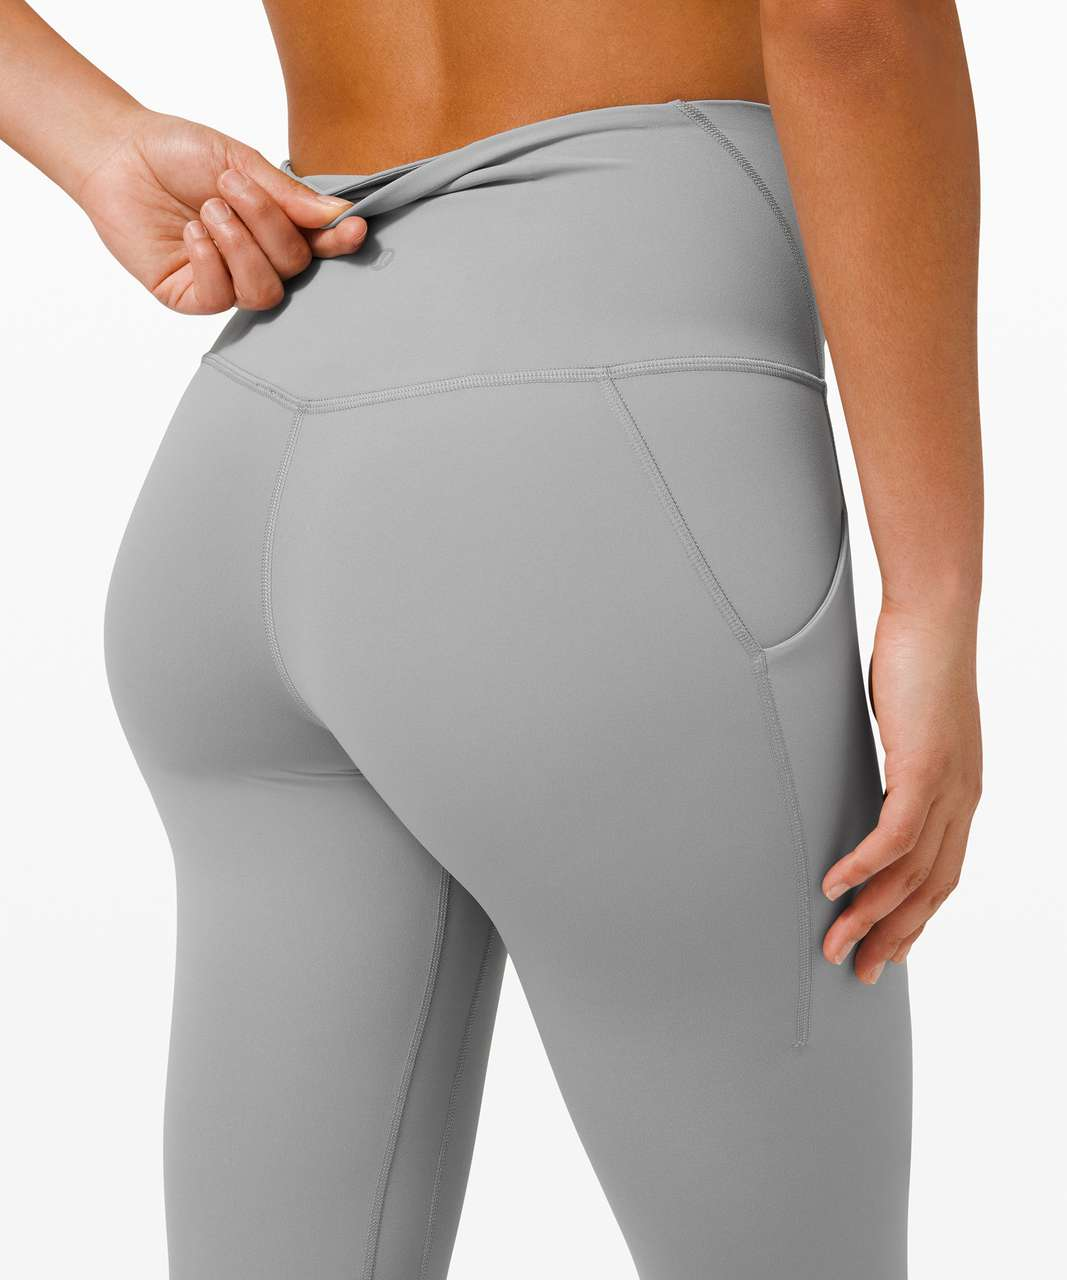 "Lululemon Align High Rise Pant with Pockets 25"" - Rhino Grey"